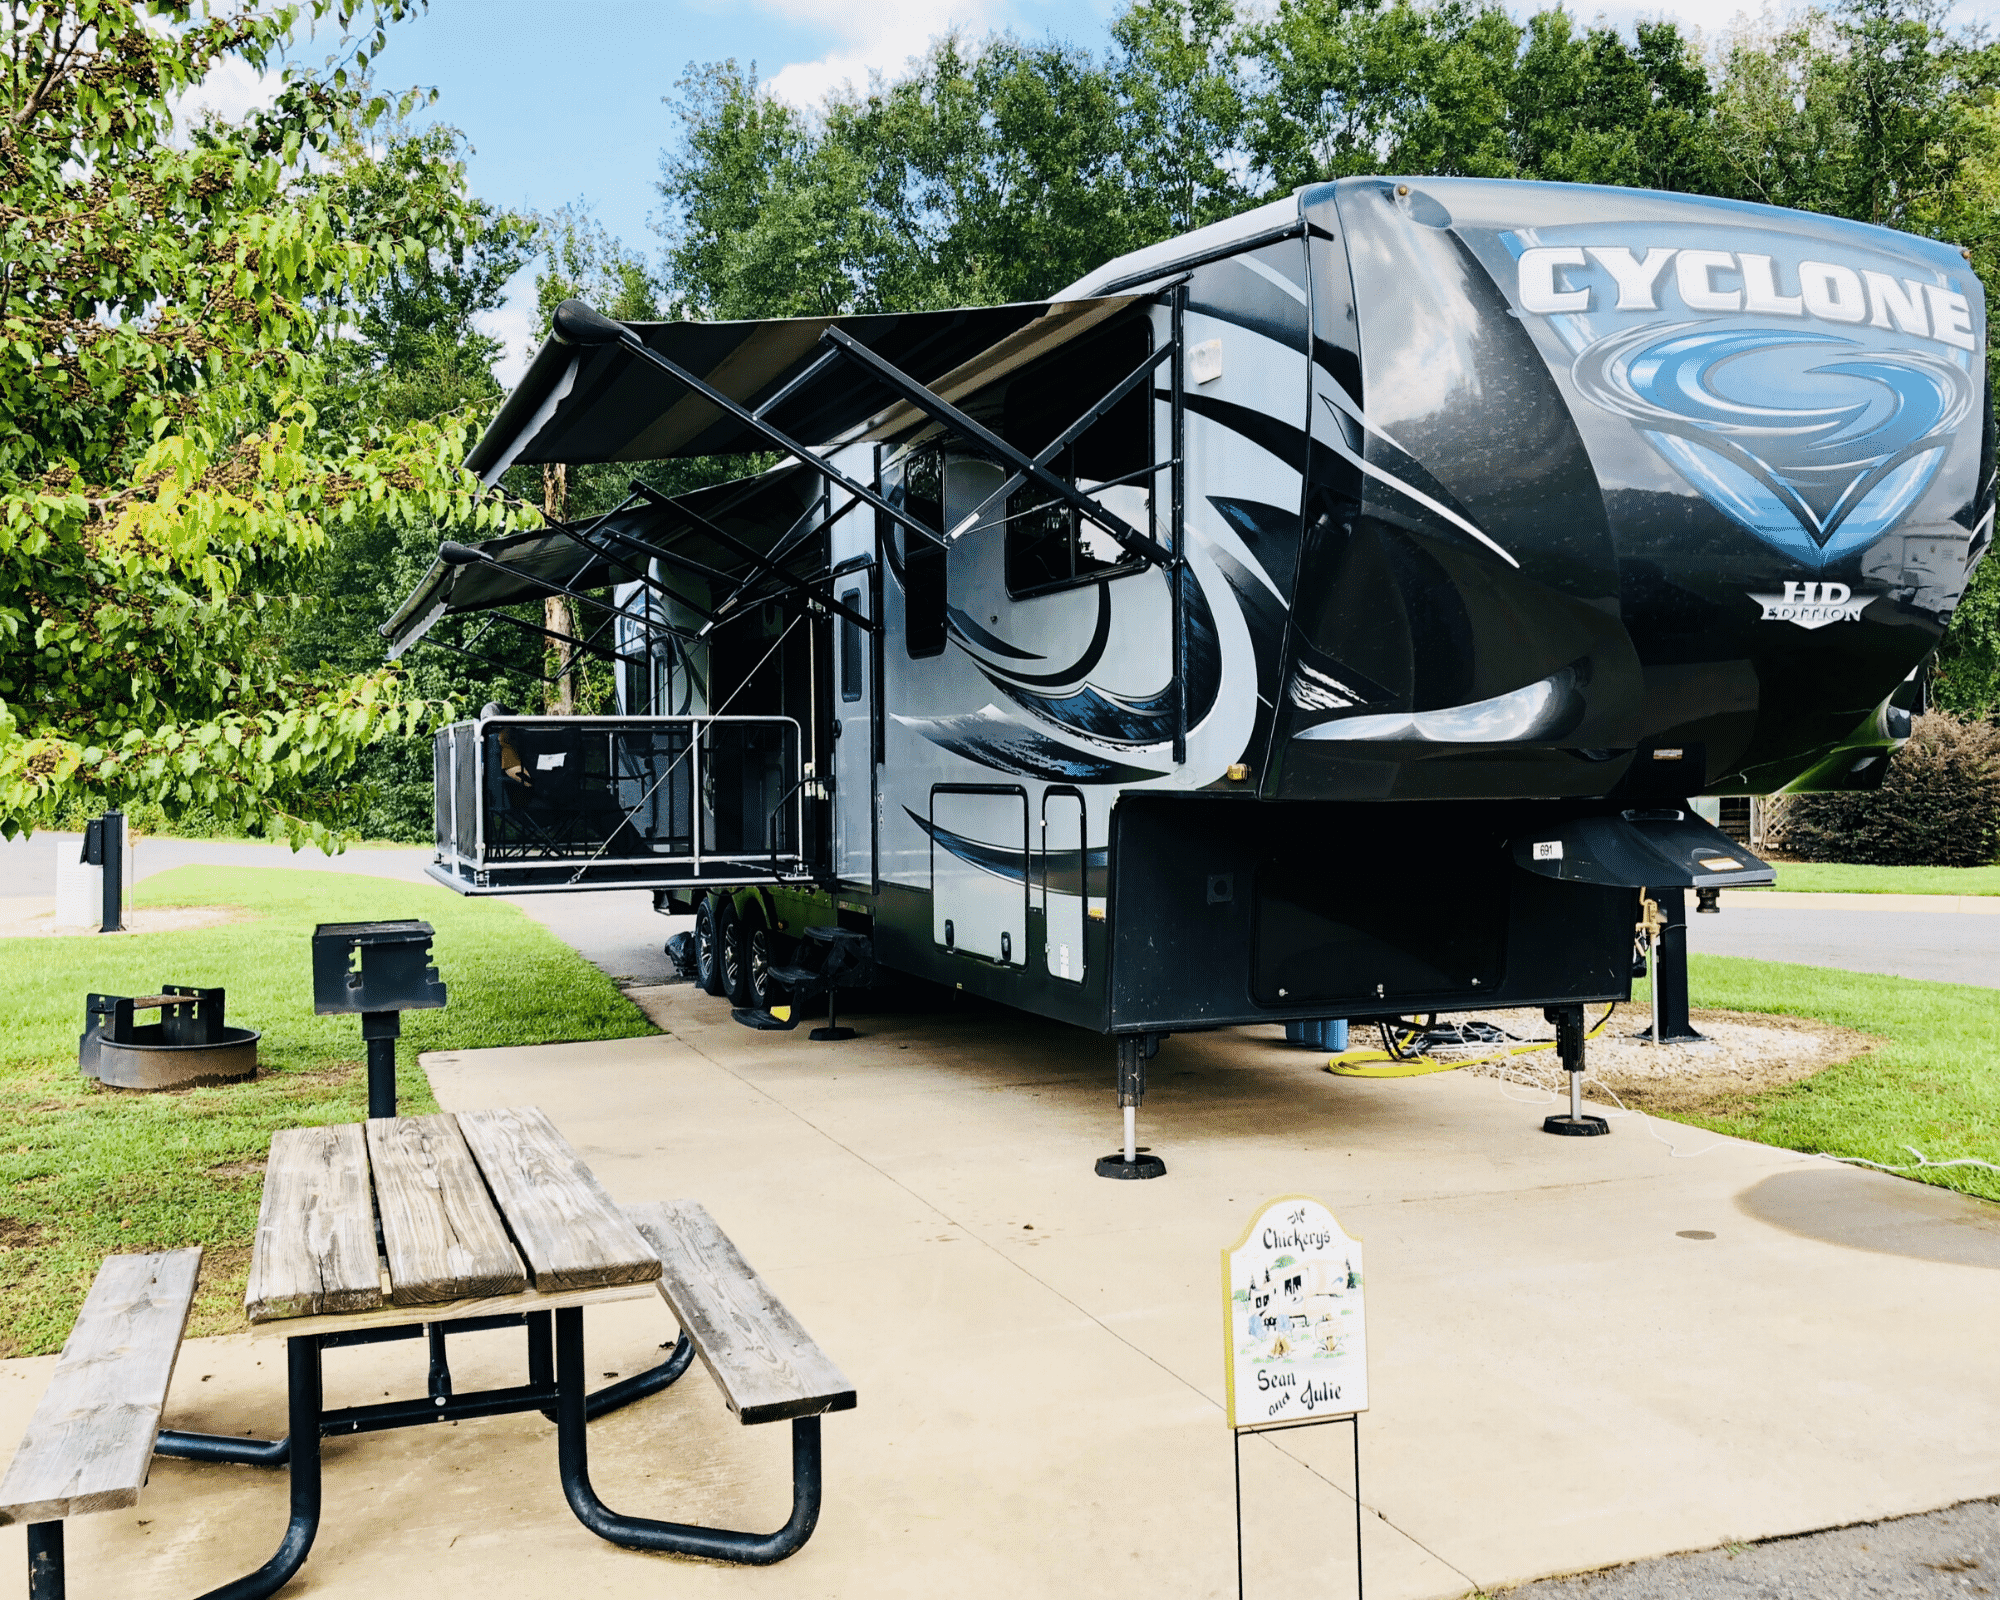 Fifth Wheel RV at campsite